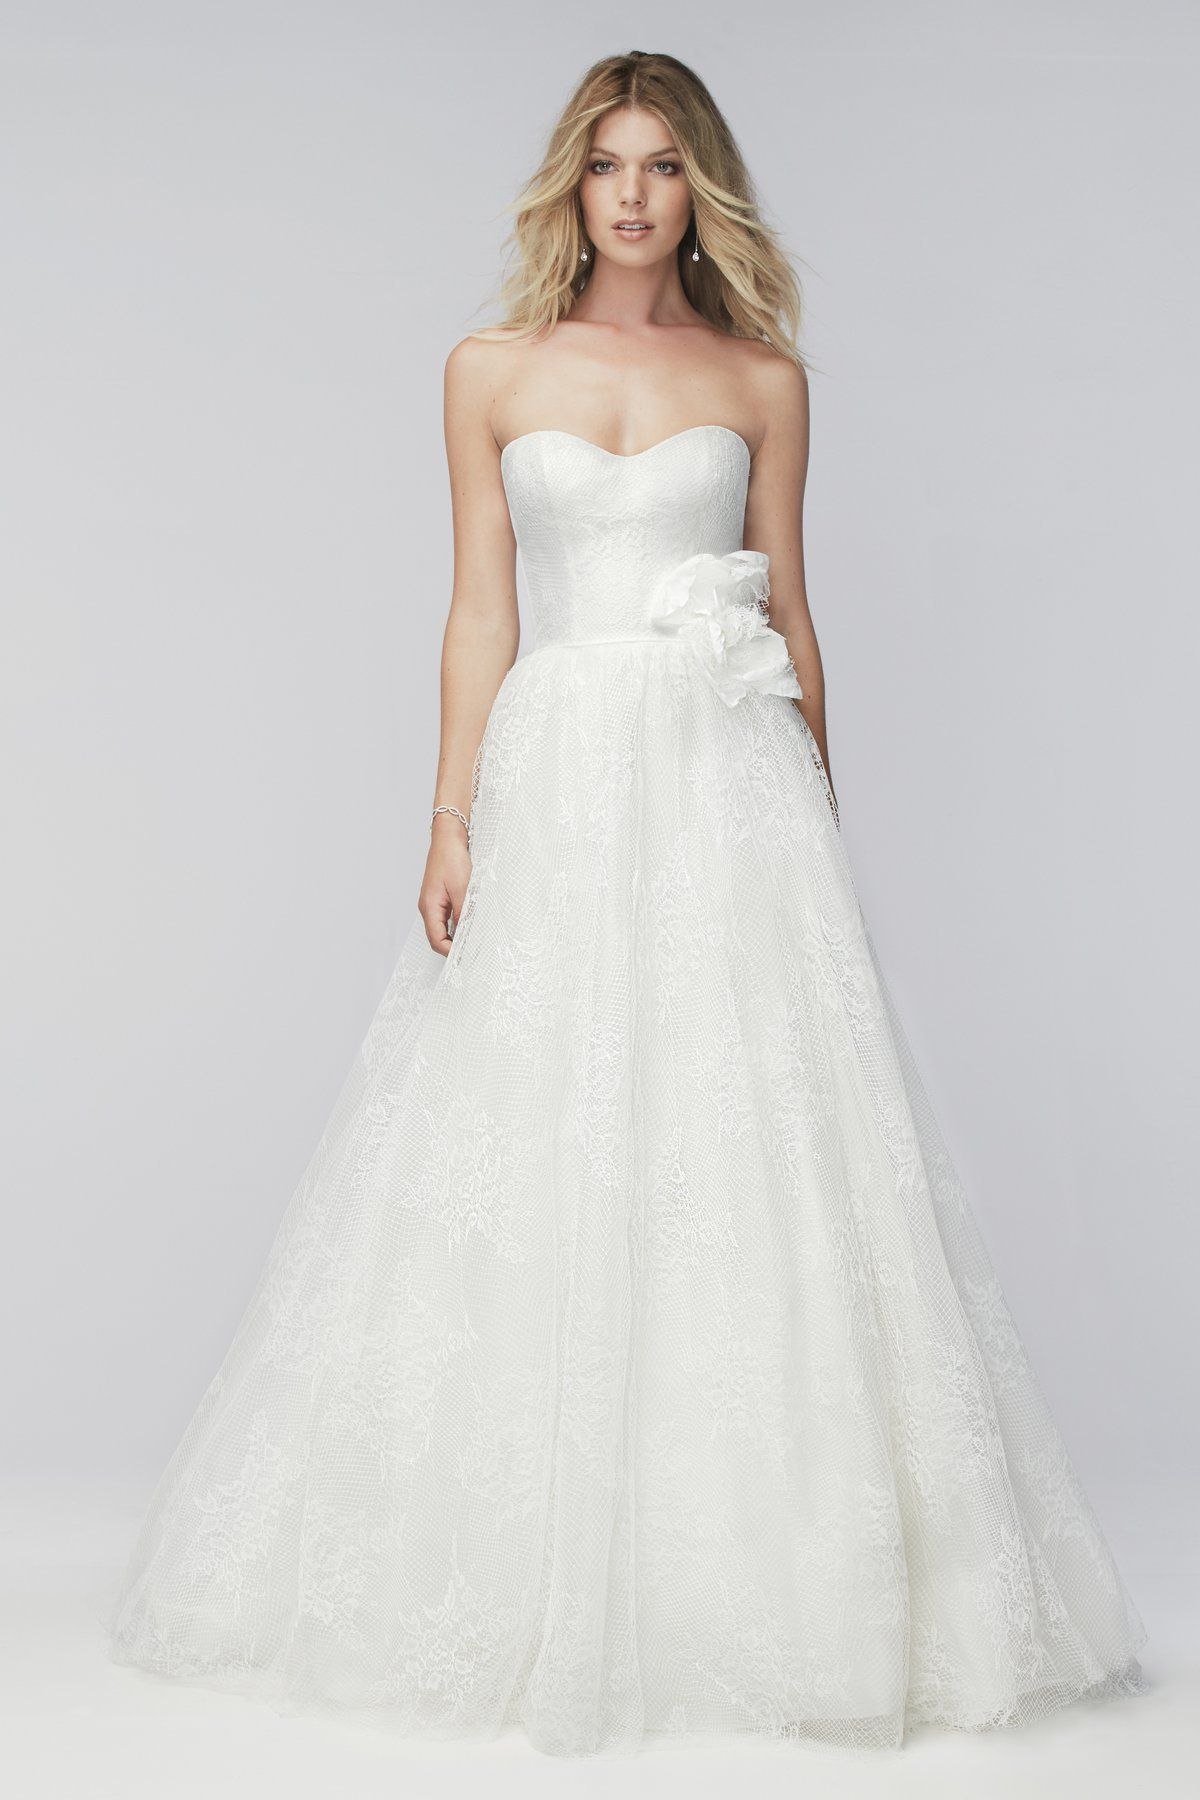 Wtoo Brides Carson Gown Available At I Do Bridal Book Your Ointment Today 3164405949